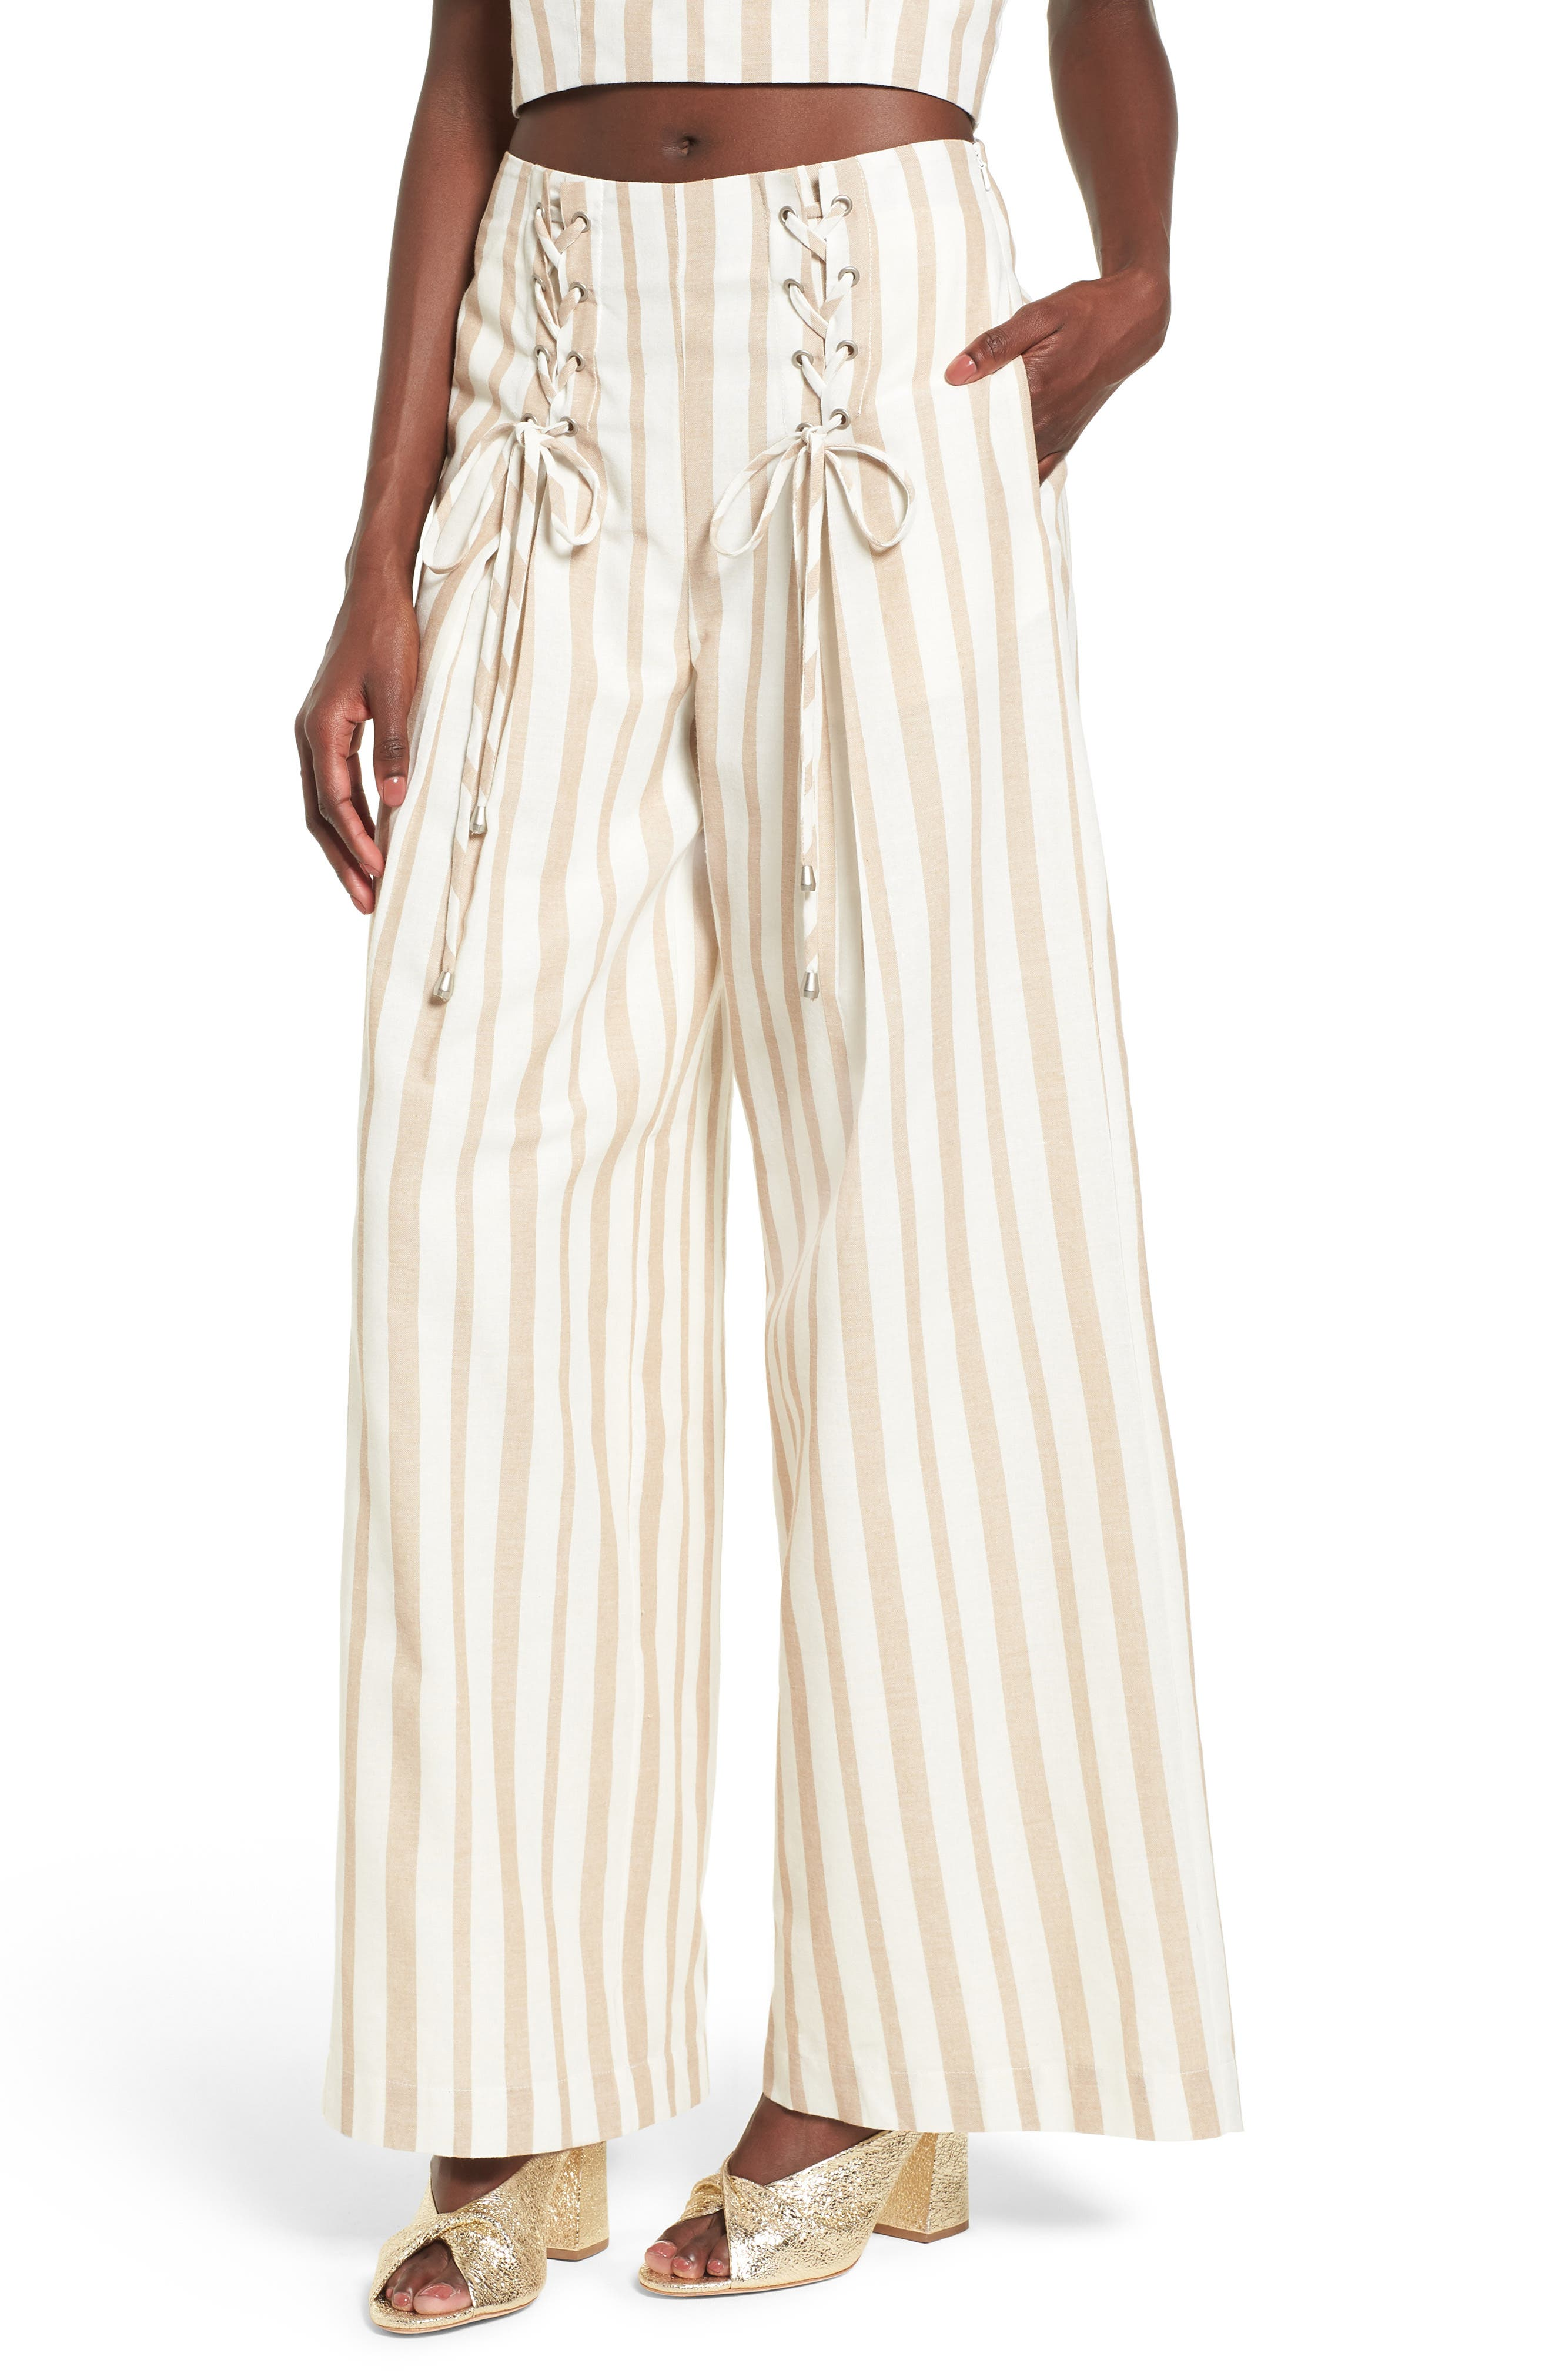 Chriselle x J.O.A. Lace-Up High Waist Wide Leg Pants,                         Main,                         color, Sand Stripe